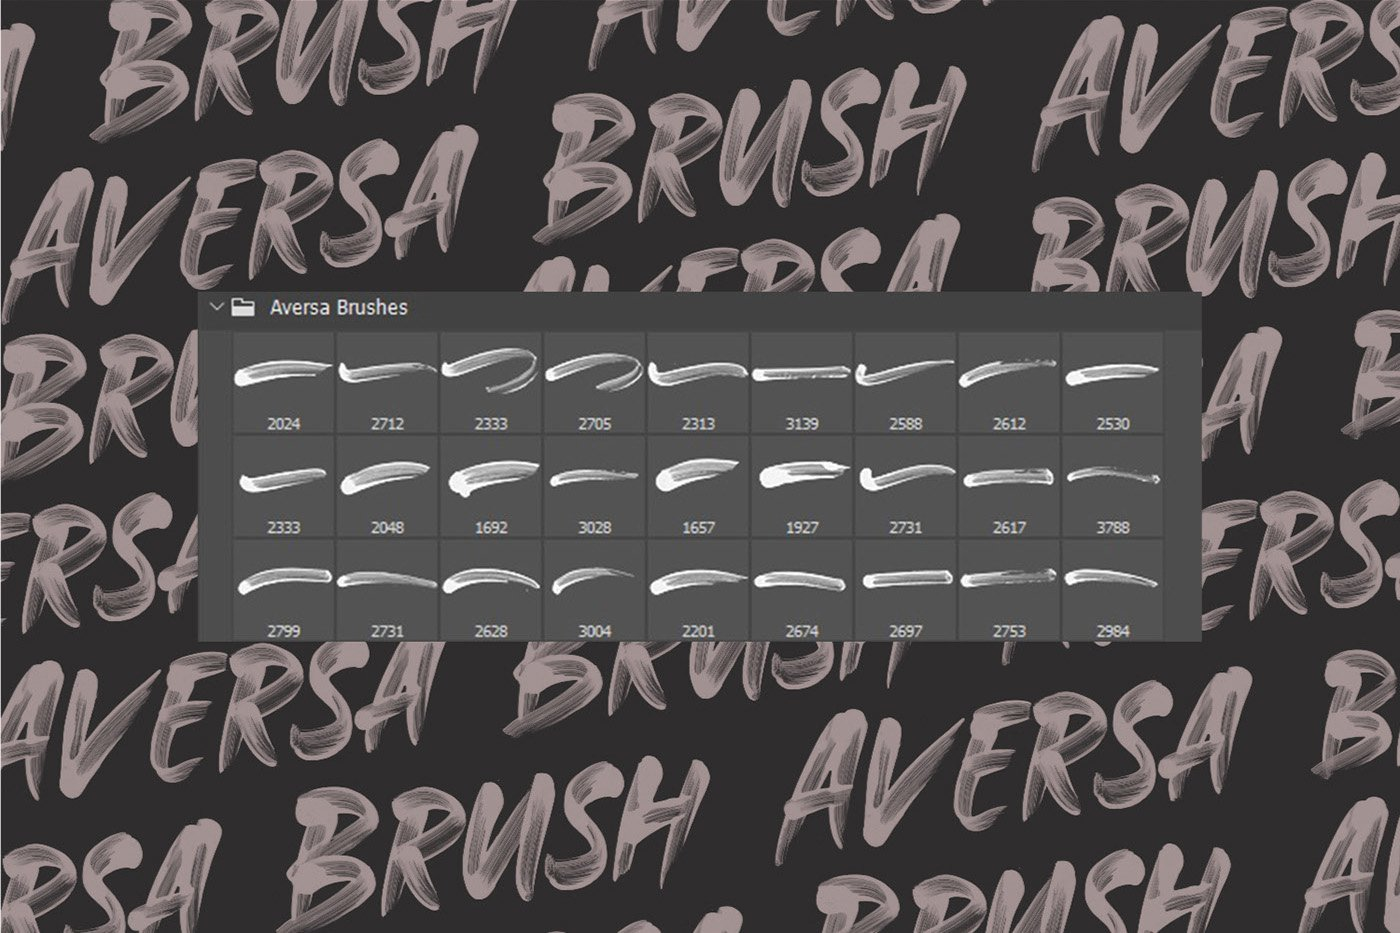 Aversa - 27 Free Photoshop Brush Strokes кисти скачать